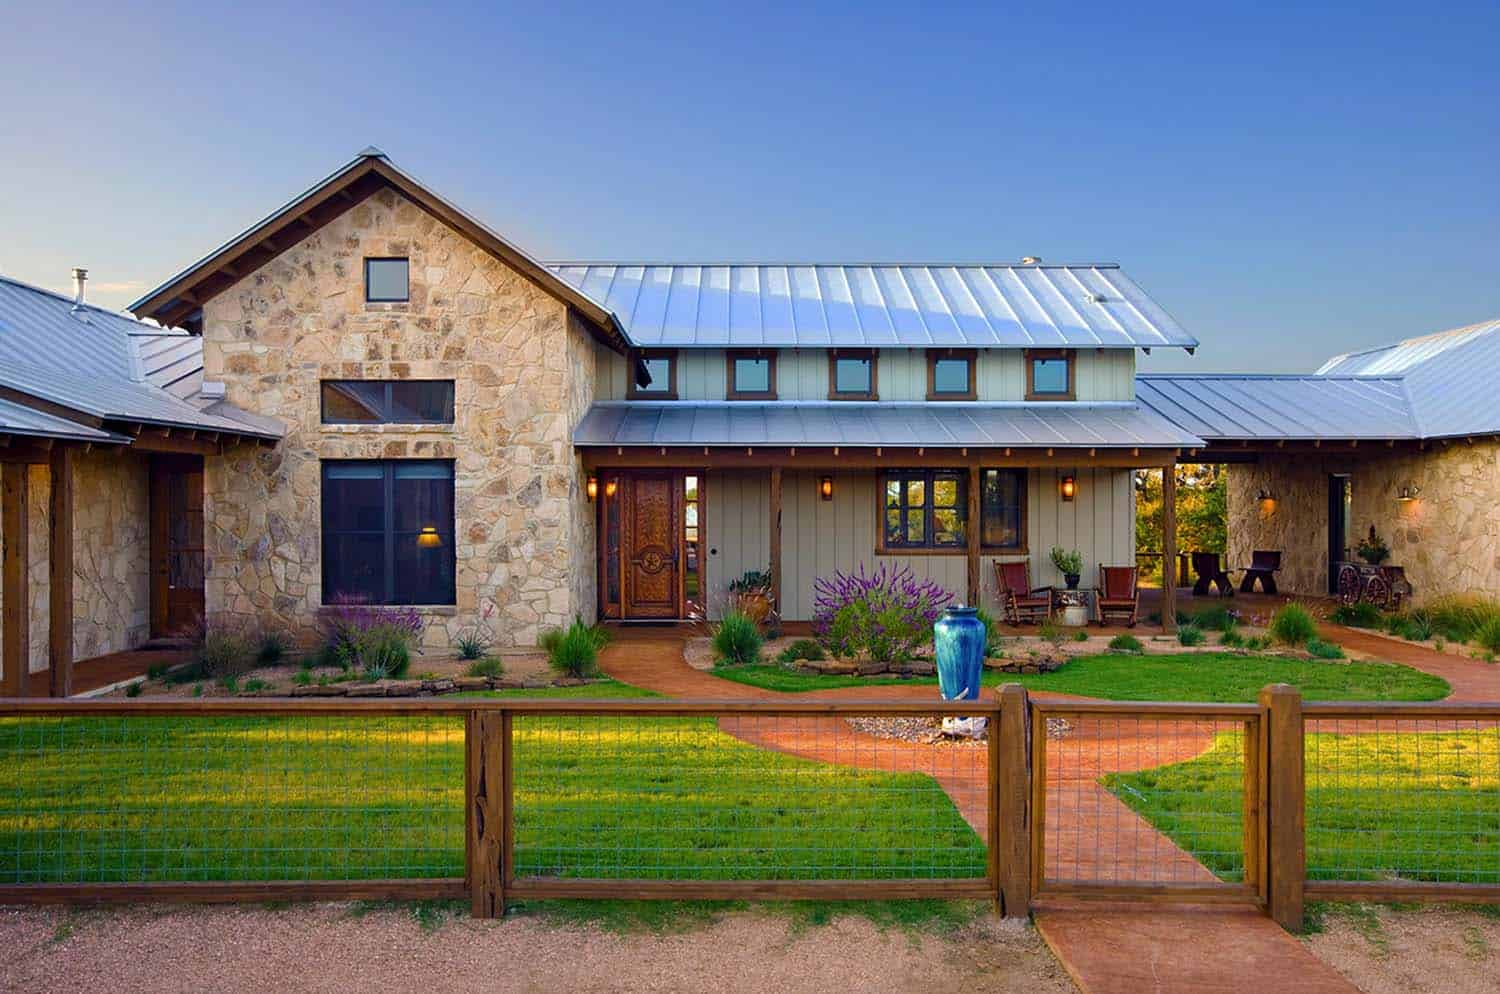 Ranch House-Barn-Burleson Design Group-03-1 Kindesign